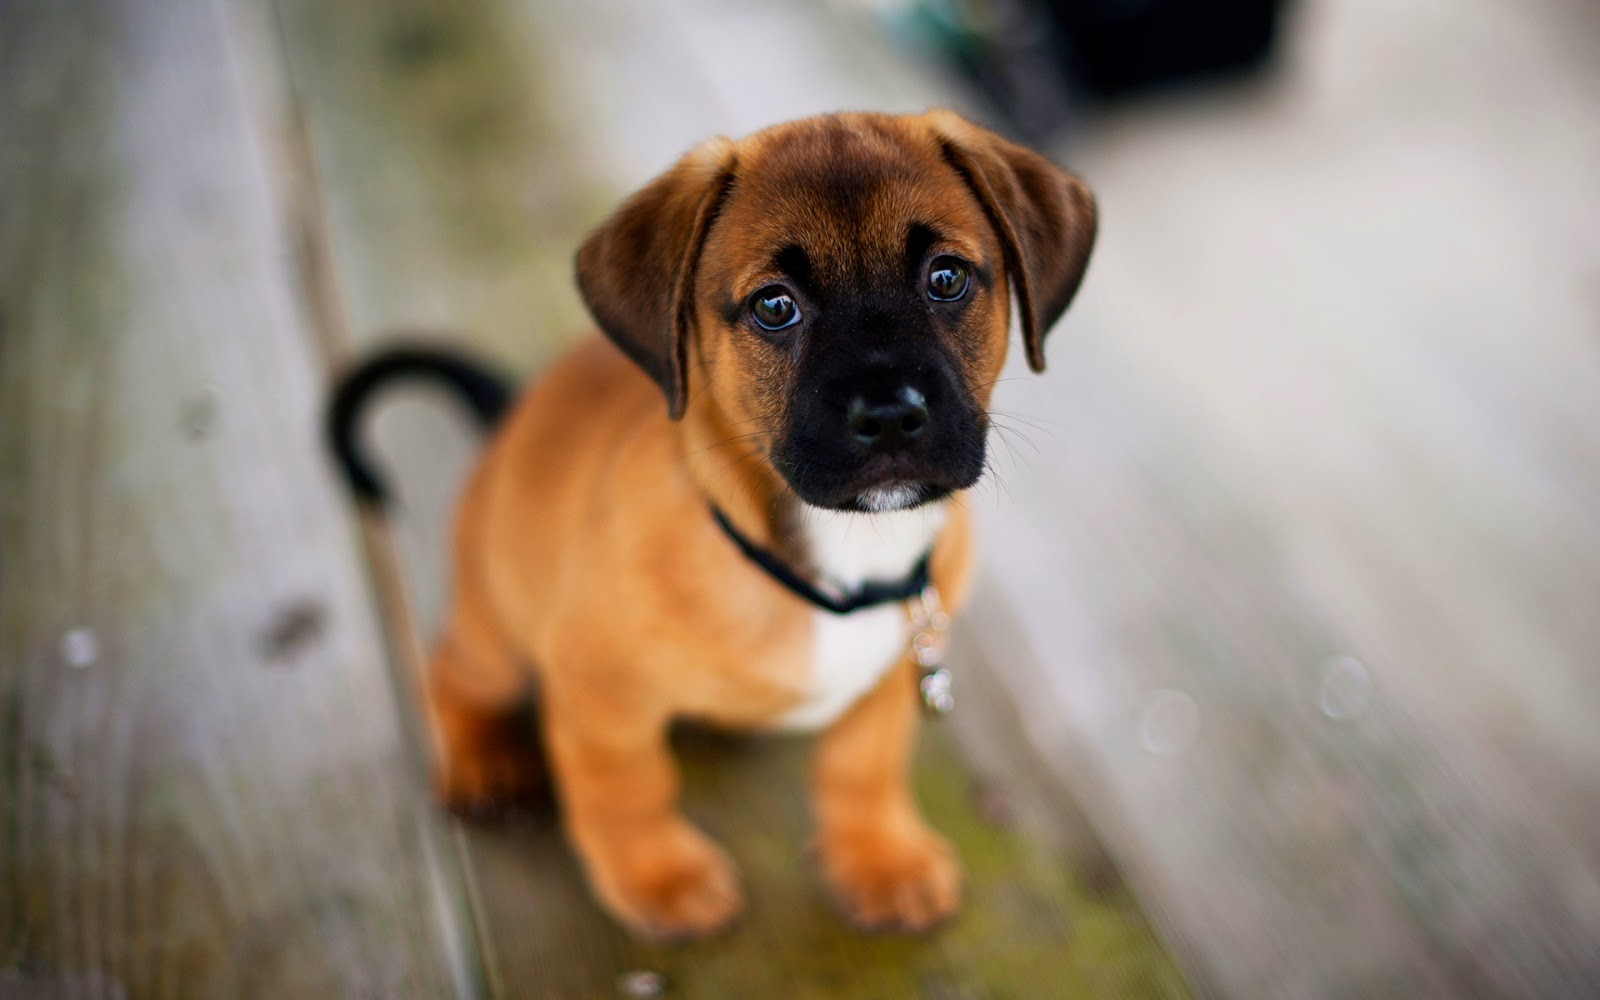 Dog Hd Wallpapers Free Download For Pc Online Fun